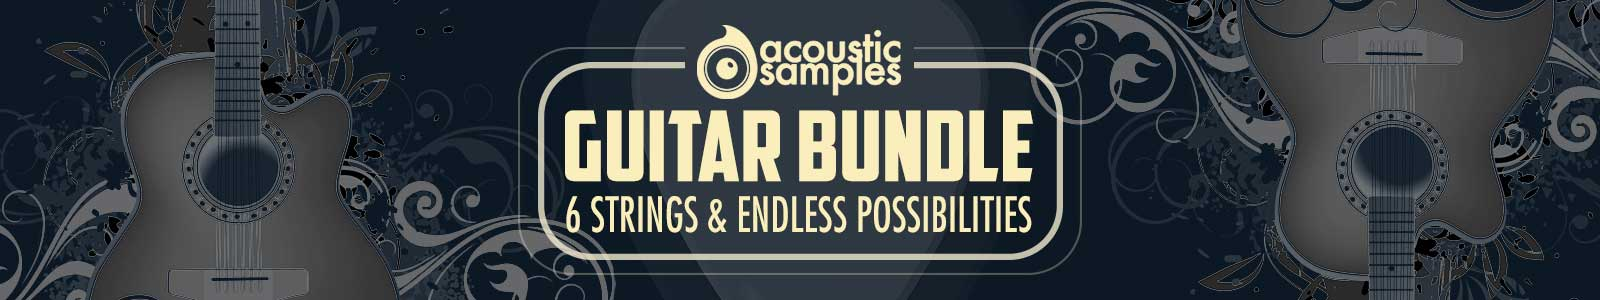 AcousticSamples Outstanding 3-in-1 Bundle Deal - Audio